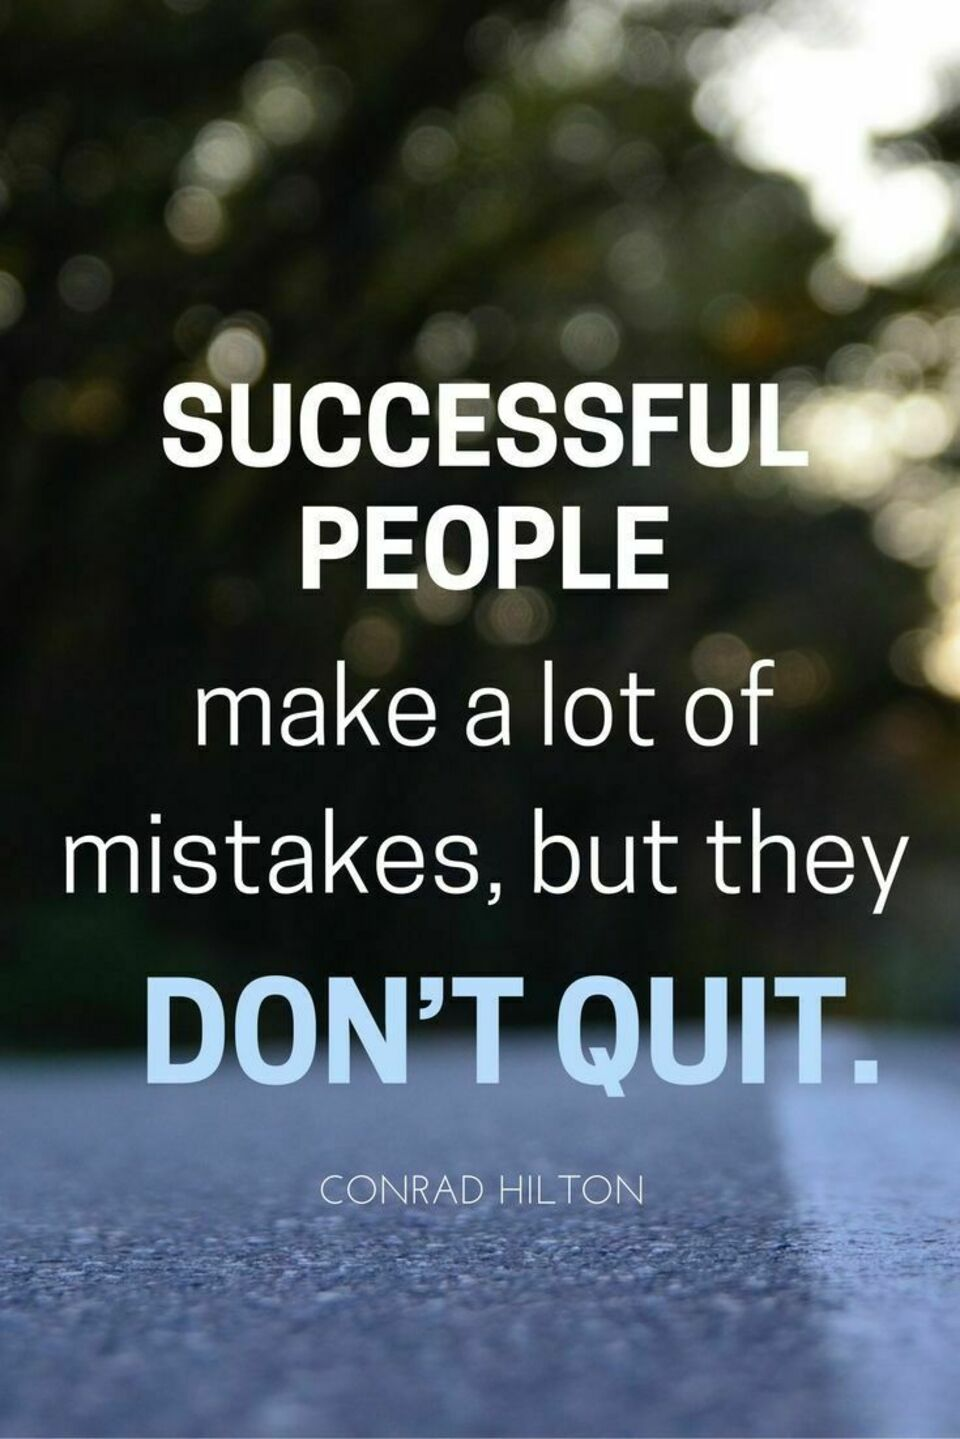 40e45ed809687fe27e010aa970c29f64  successful people conrad hilton